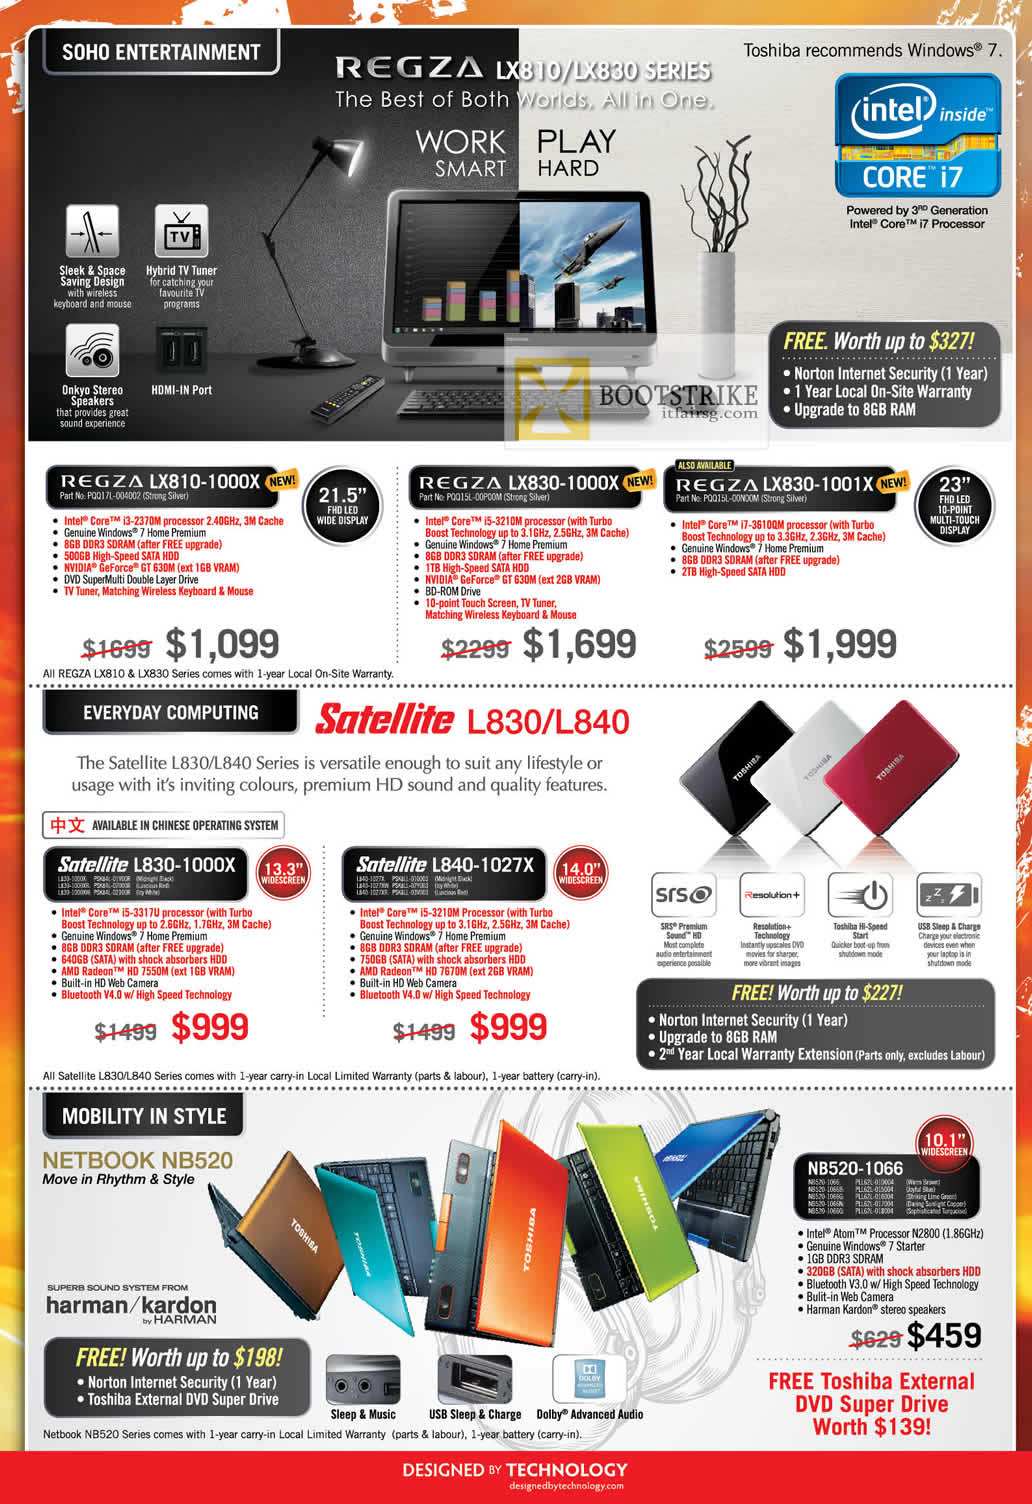 COMEX 2012 price list image brochure of Toshiba AIO Desktop PC Regza LX810-1000X, LX830-1000X 1001X, Notebooks Satellite L830-1000X, L840-1027X, Netbook NB520-1066